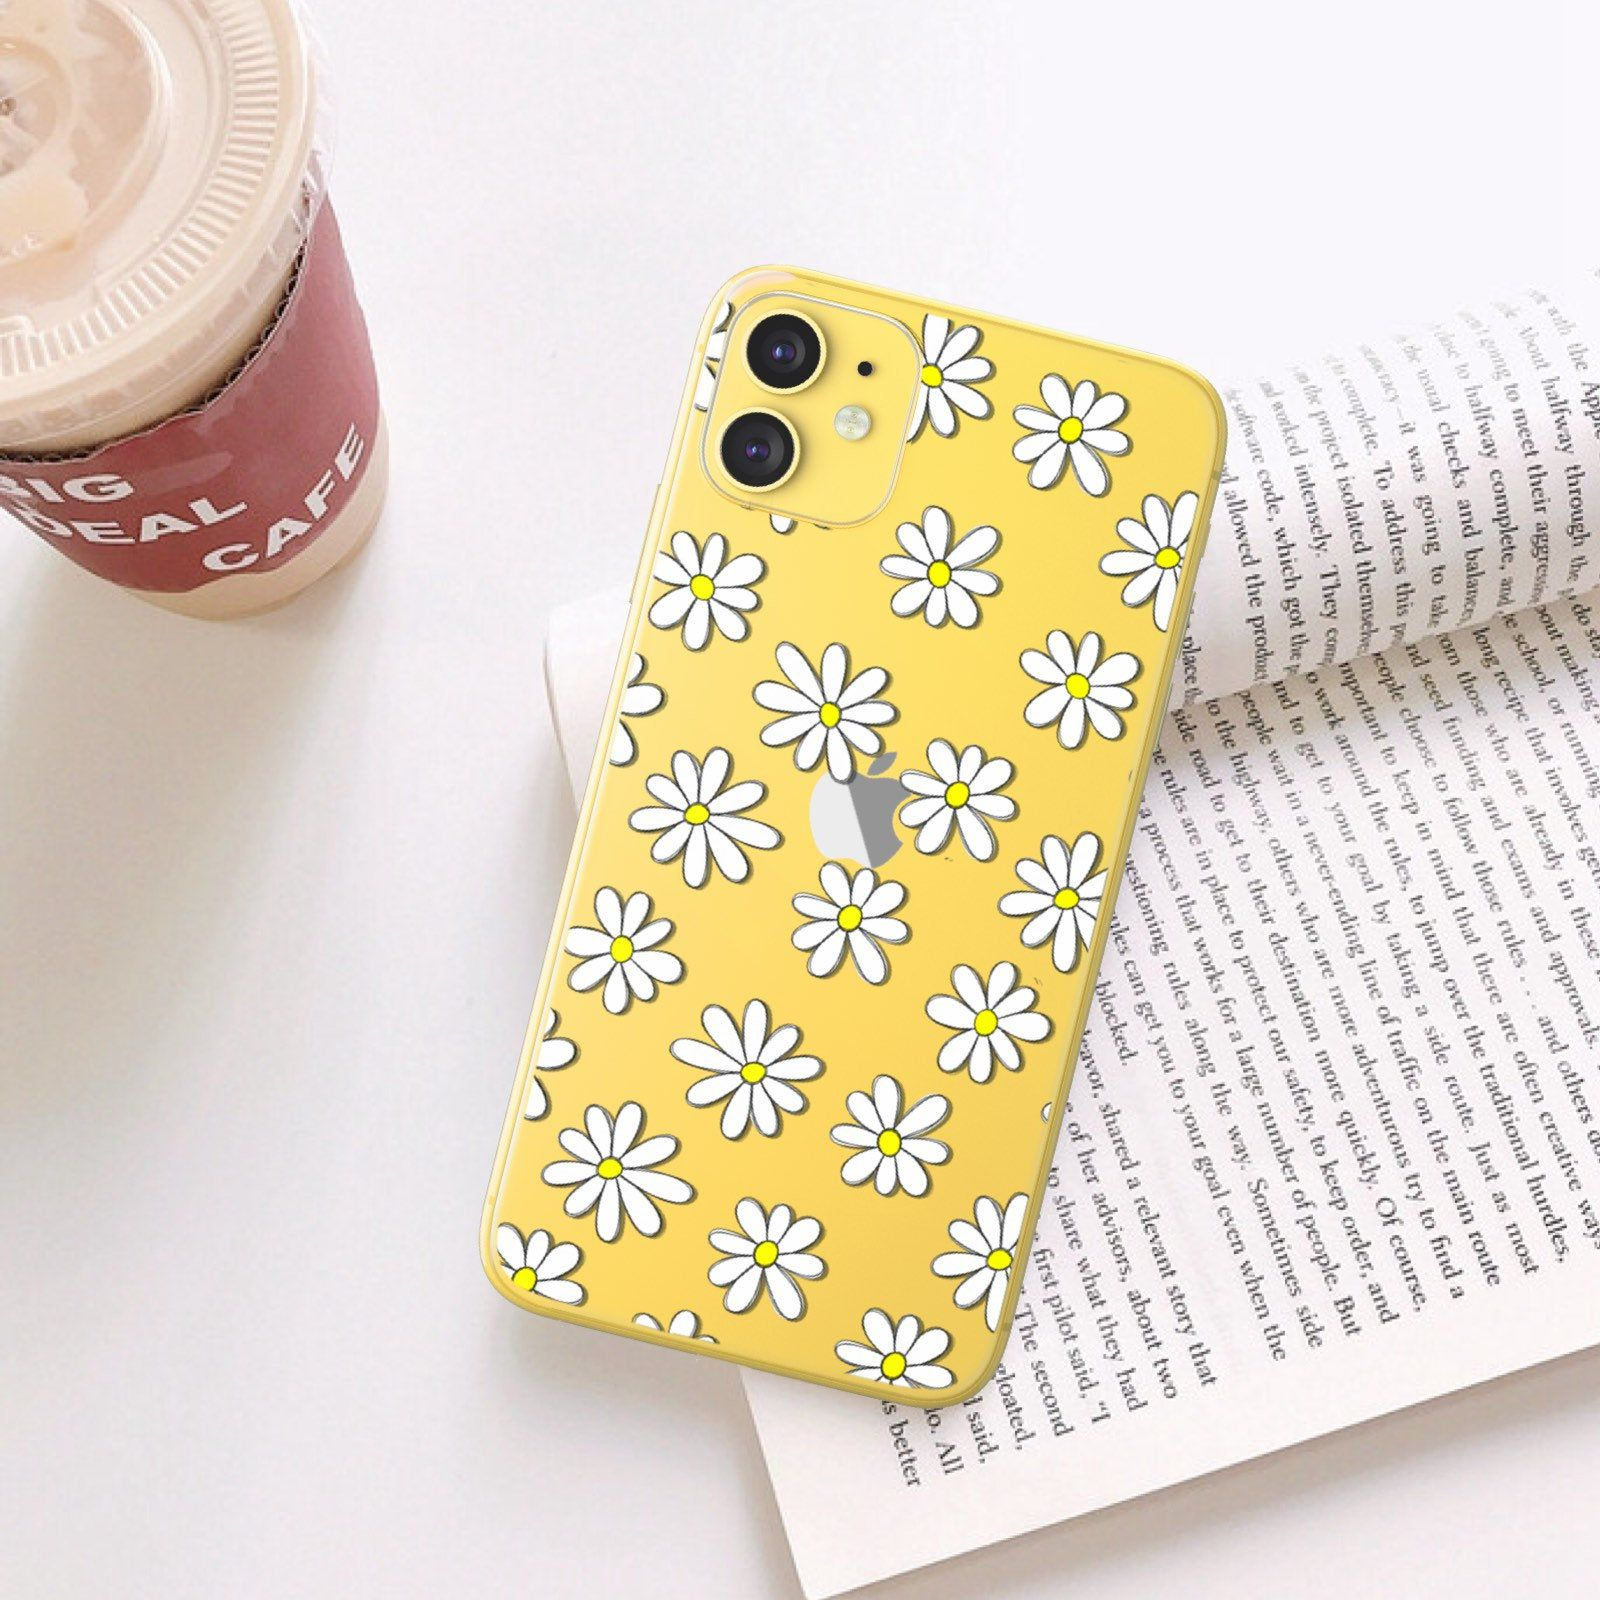 Daisy iphone case clear iphone 11 pro max case iphone xr